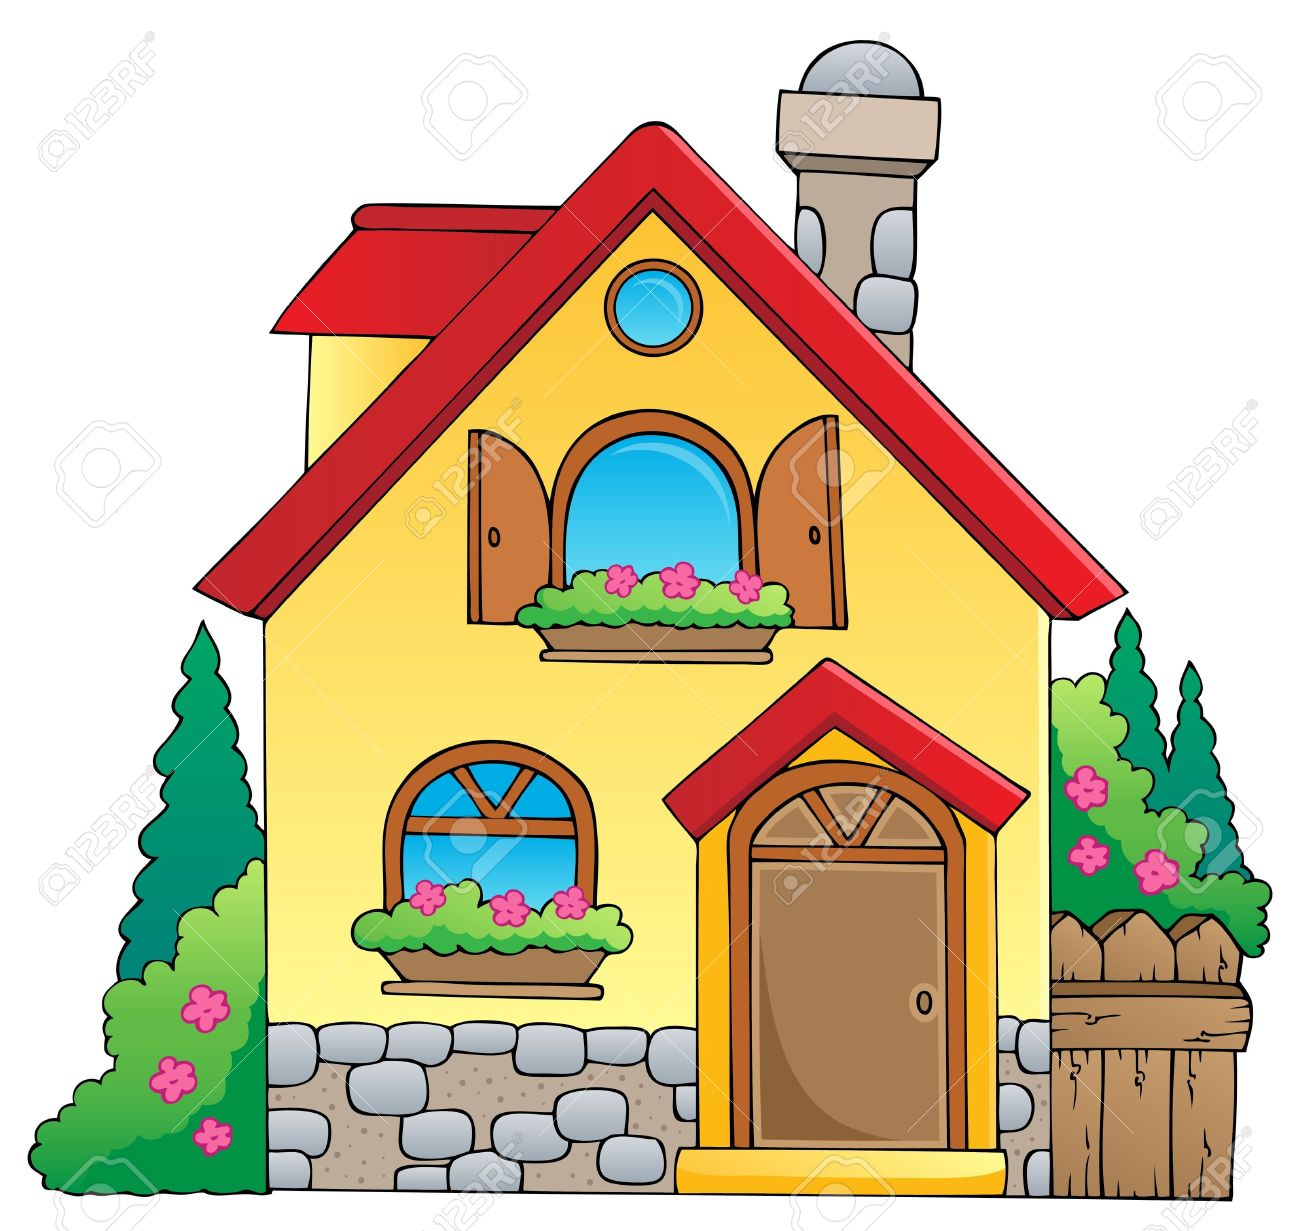 Cartoon House Clipart.